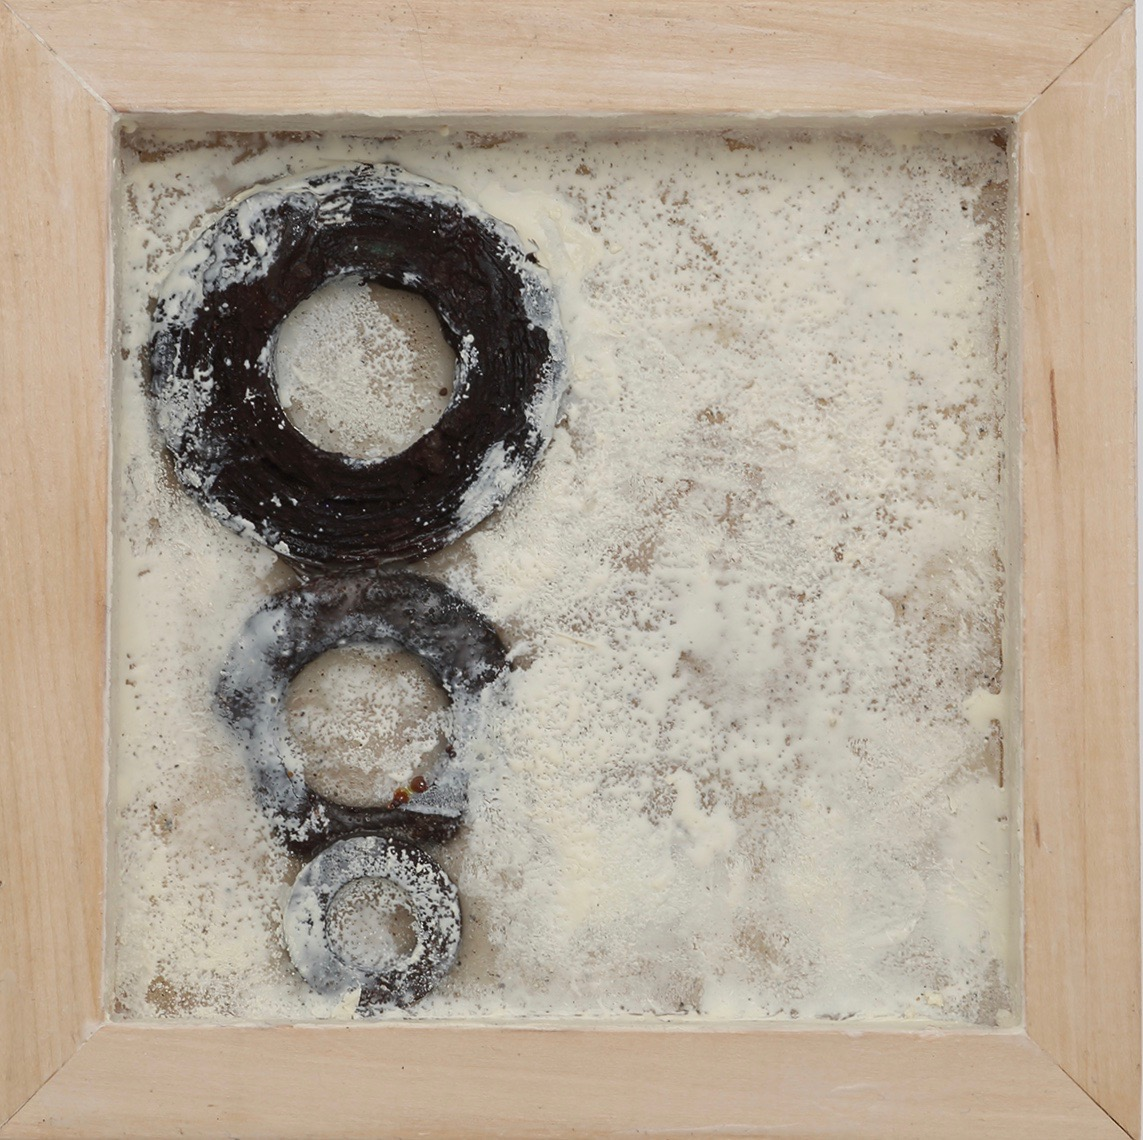 SPIRIT - Found metal and encaustic in birch wood panel8